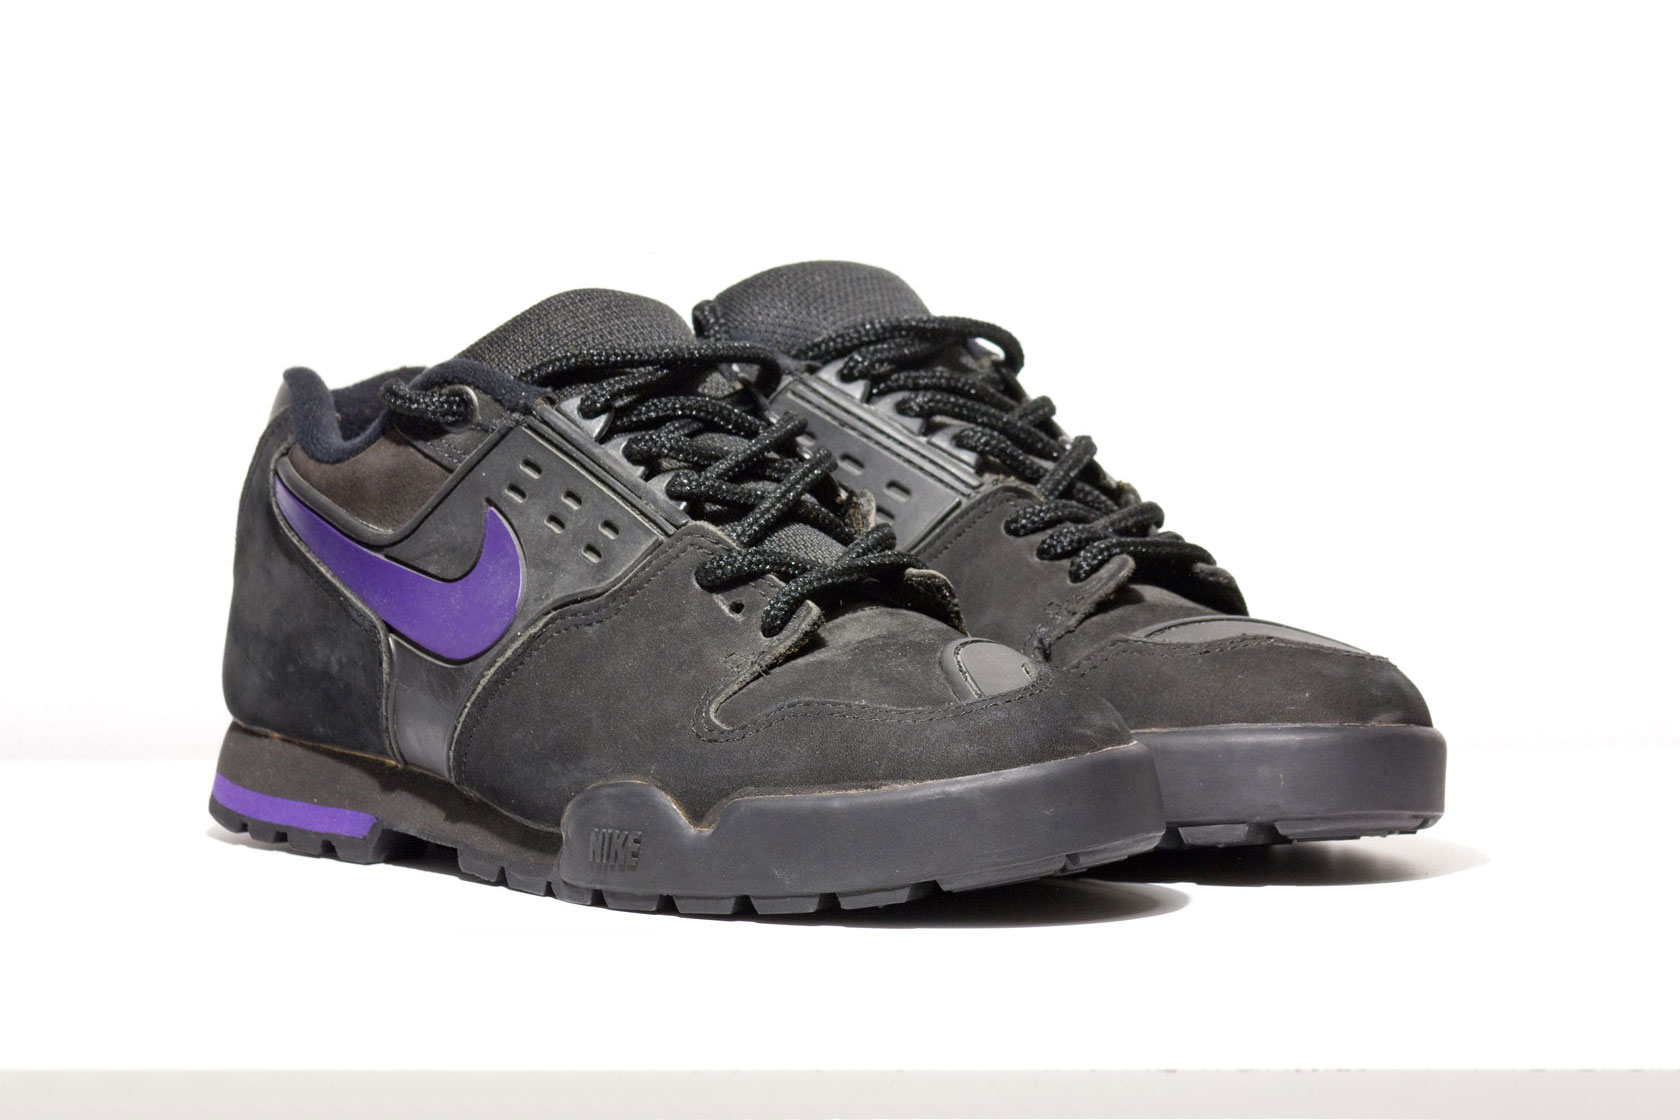 detailed look af8c9 5fca1 WORN TO BE WILD » Nike Son of Lava Dome